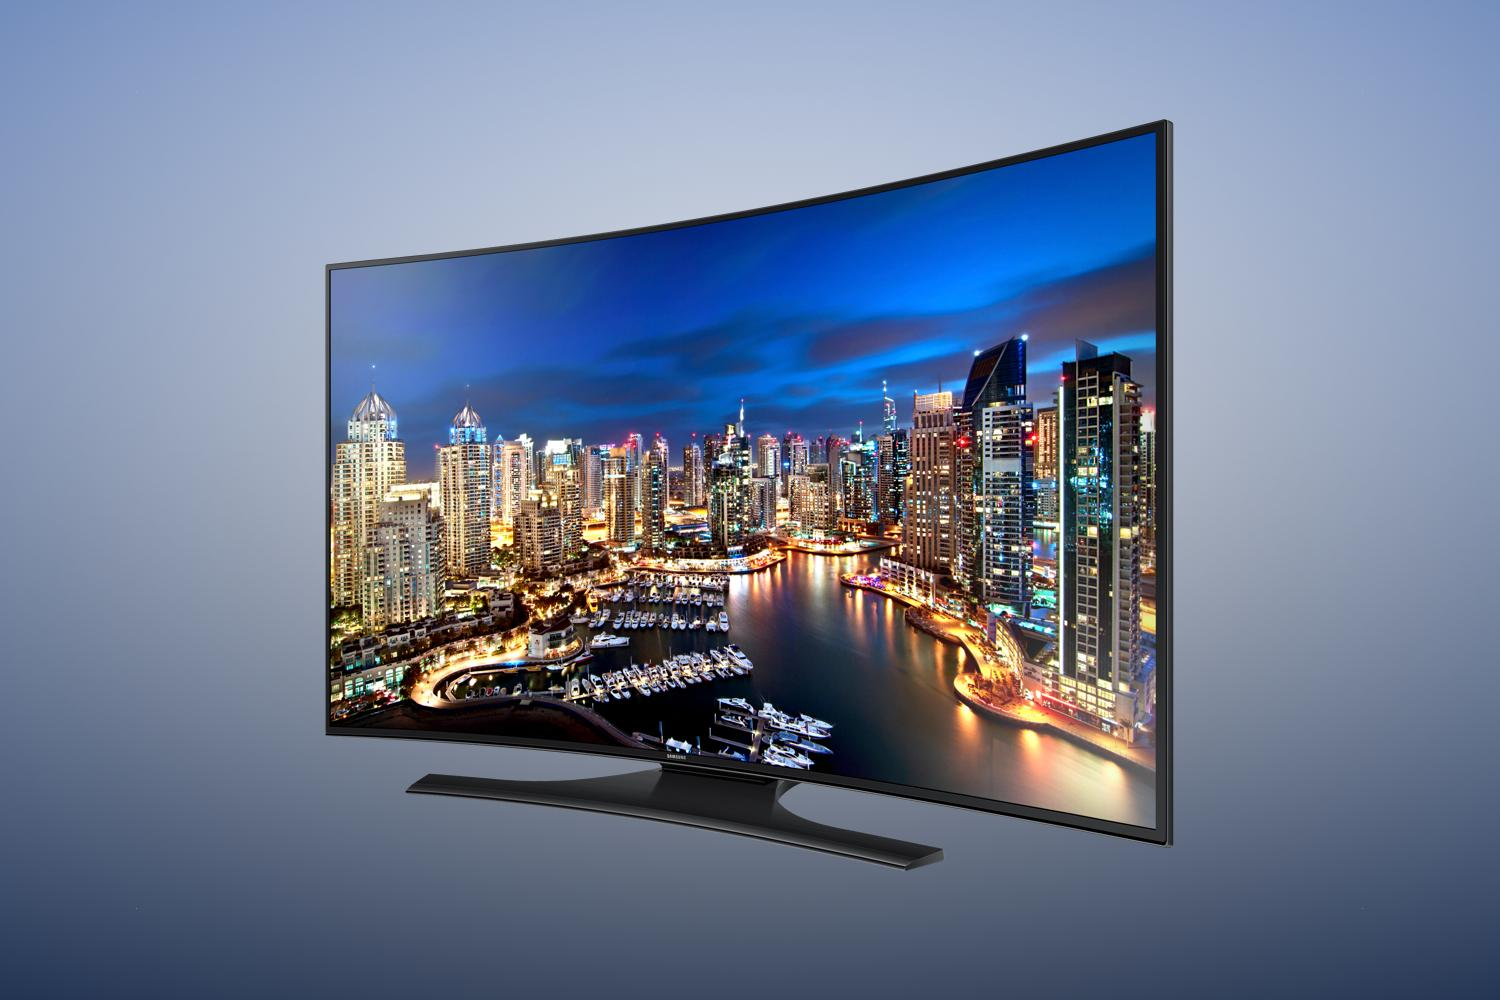 Samsung Has Finally Made A 4K TV We Can Afford